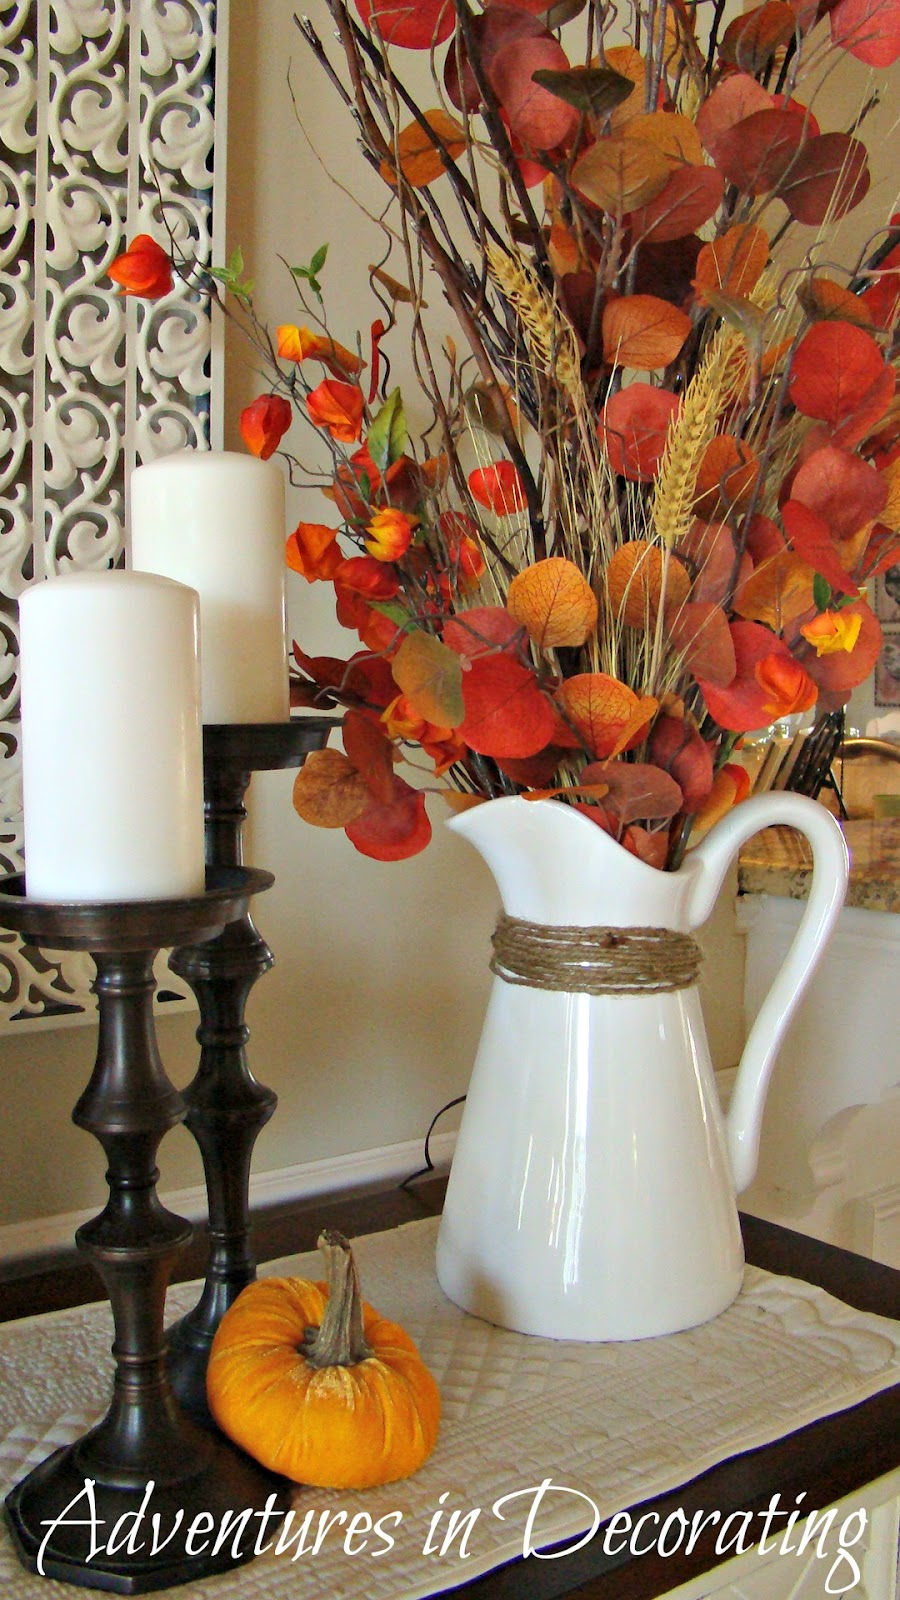 Adventures in Decorating: Fall Buffet